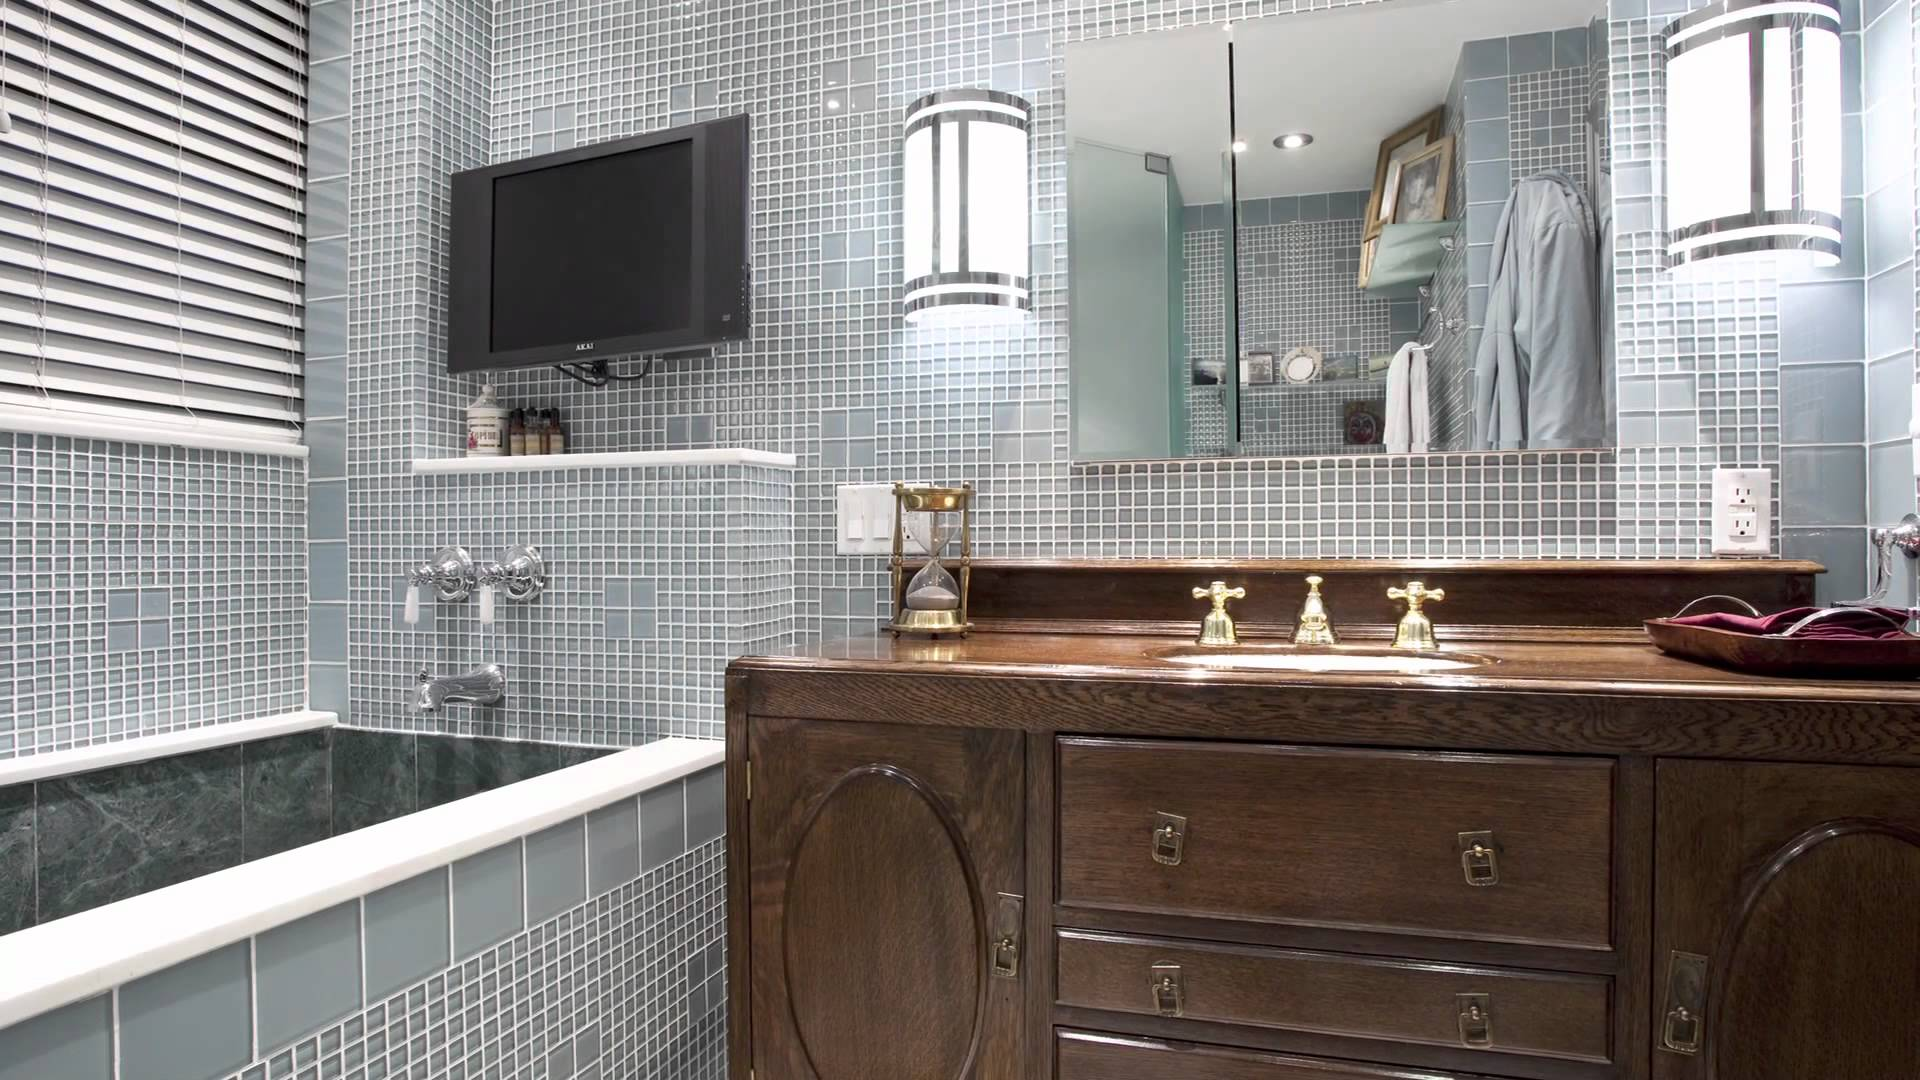 30 great pictures and ideas art nouveau bathroom tiles on msn bathroom designs, hgtv bathroom designs, pinterest bathroom designs, amazon bathroom designs, target bathroom designs, seattle bathroom designs, economy bathroom designs, google bathroom designs, walmart bathroom designs, home bathroom designs, family bathroom designs, 1 2 bathroom designs,